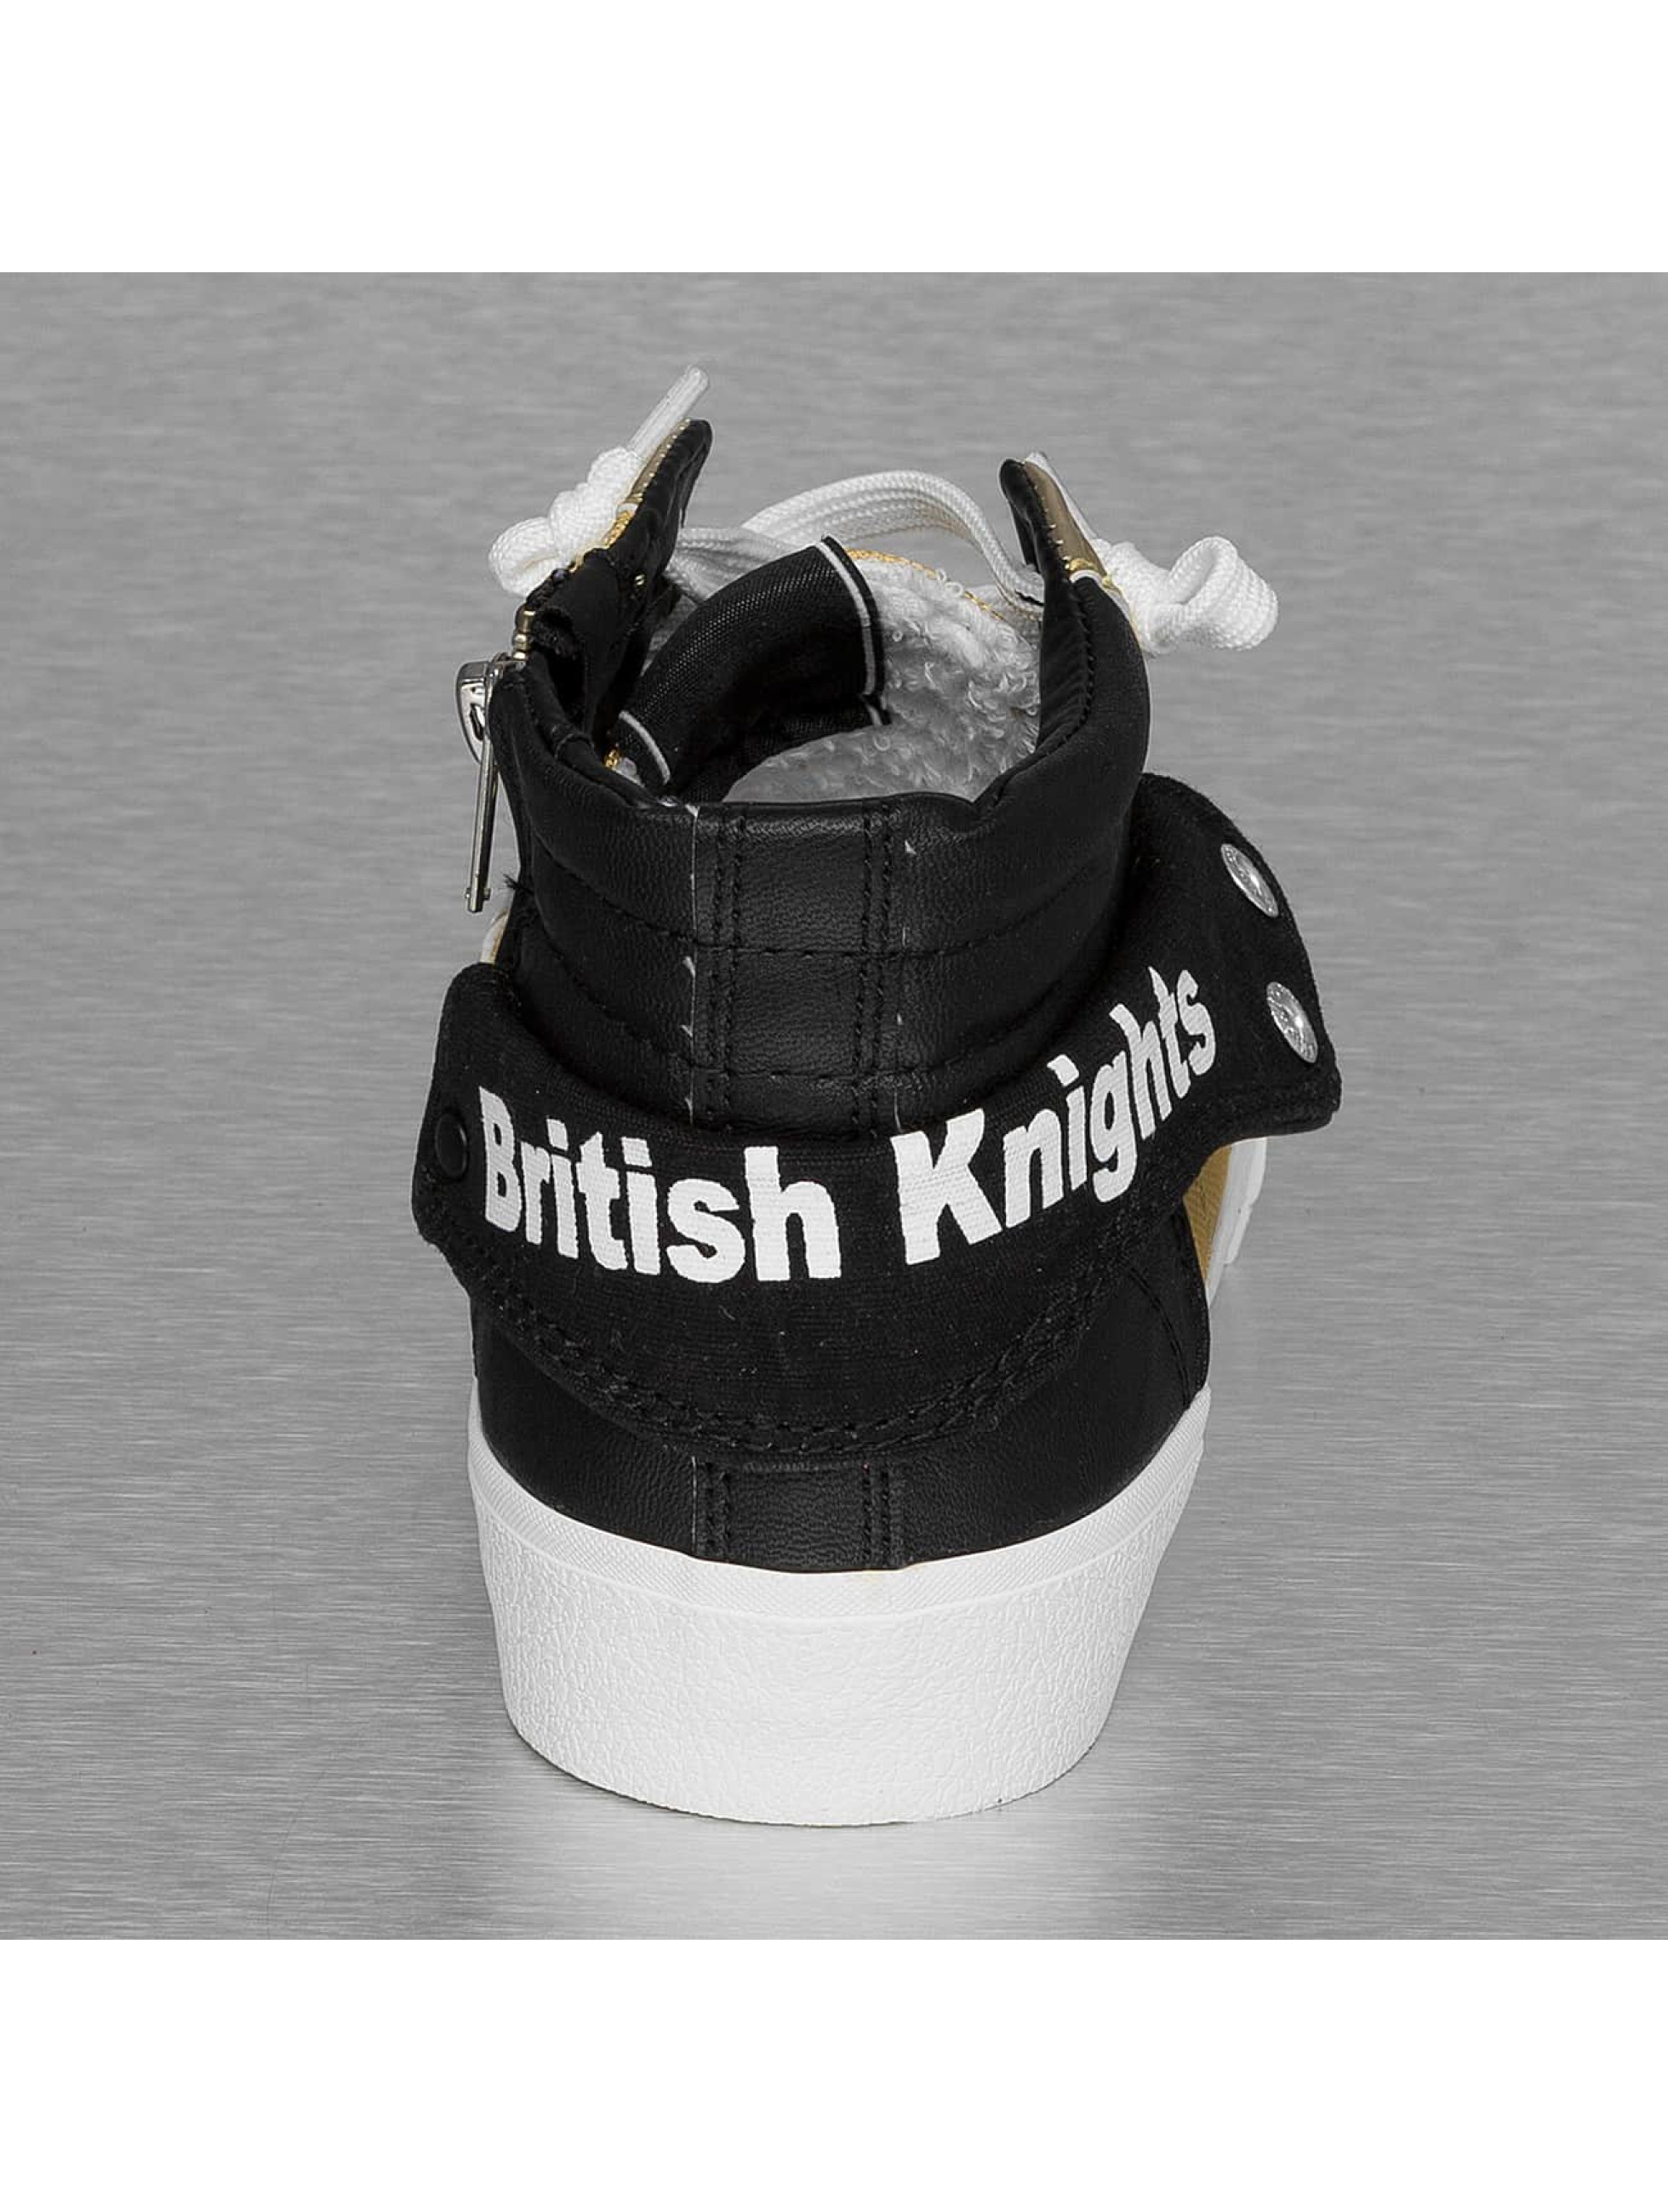 British Knights Sneaker Rigit Mesh PU goldfarben